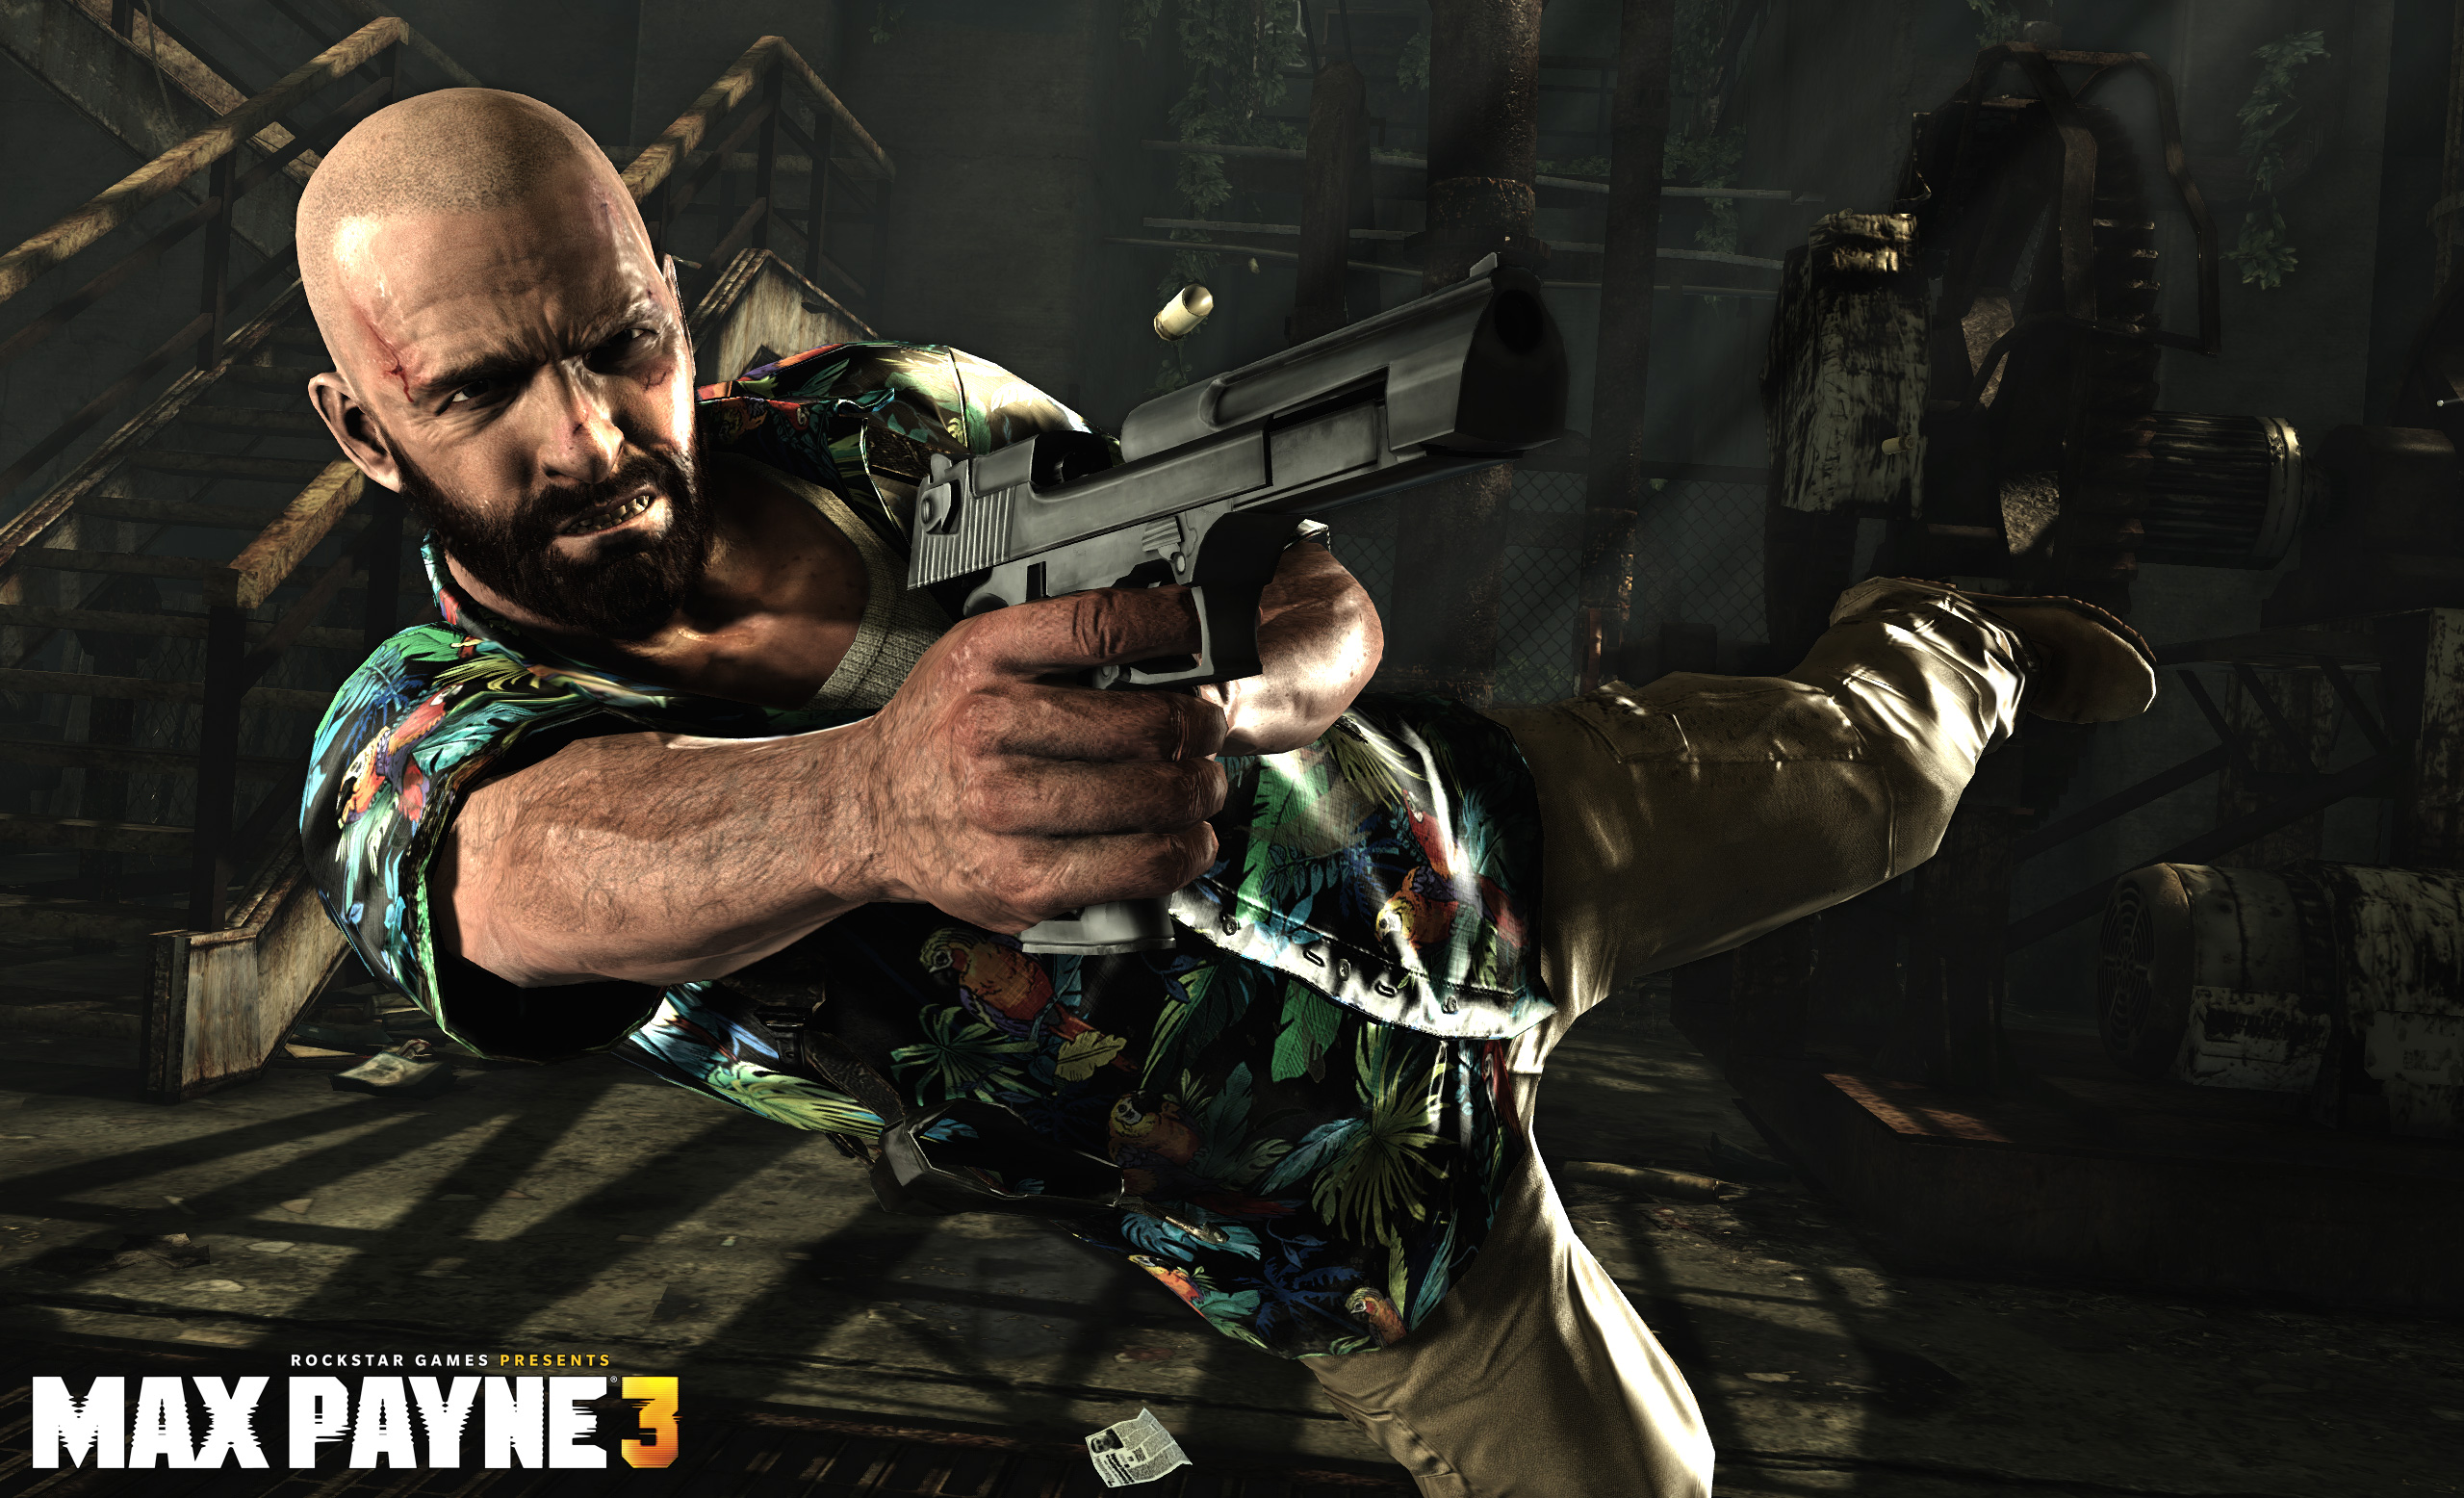 Bullet Time? Max Payne 3 may be coming to Mac